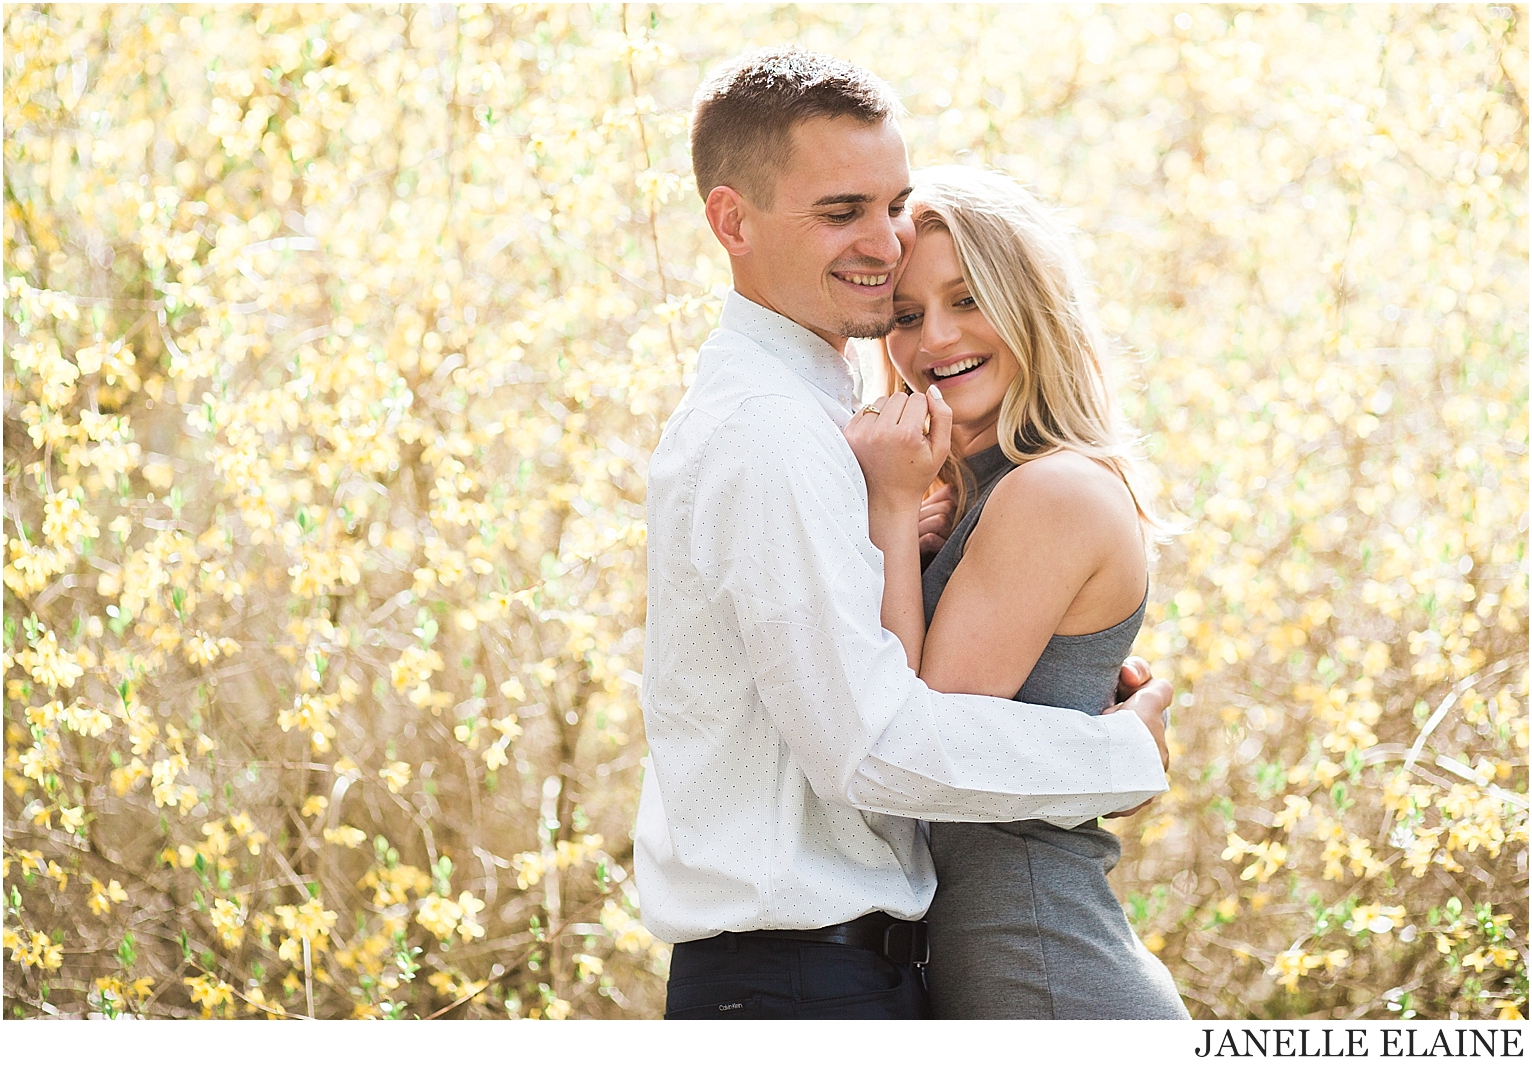 tricia and nate engagement photos-janelle elaine photography-92.jpg